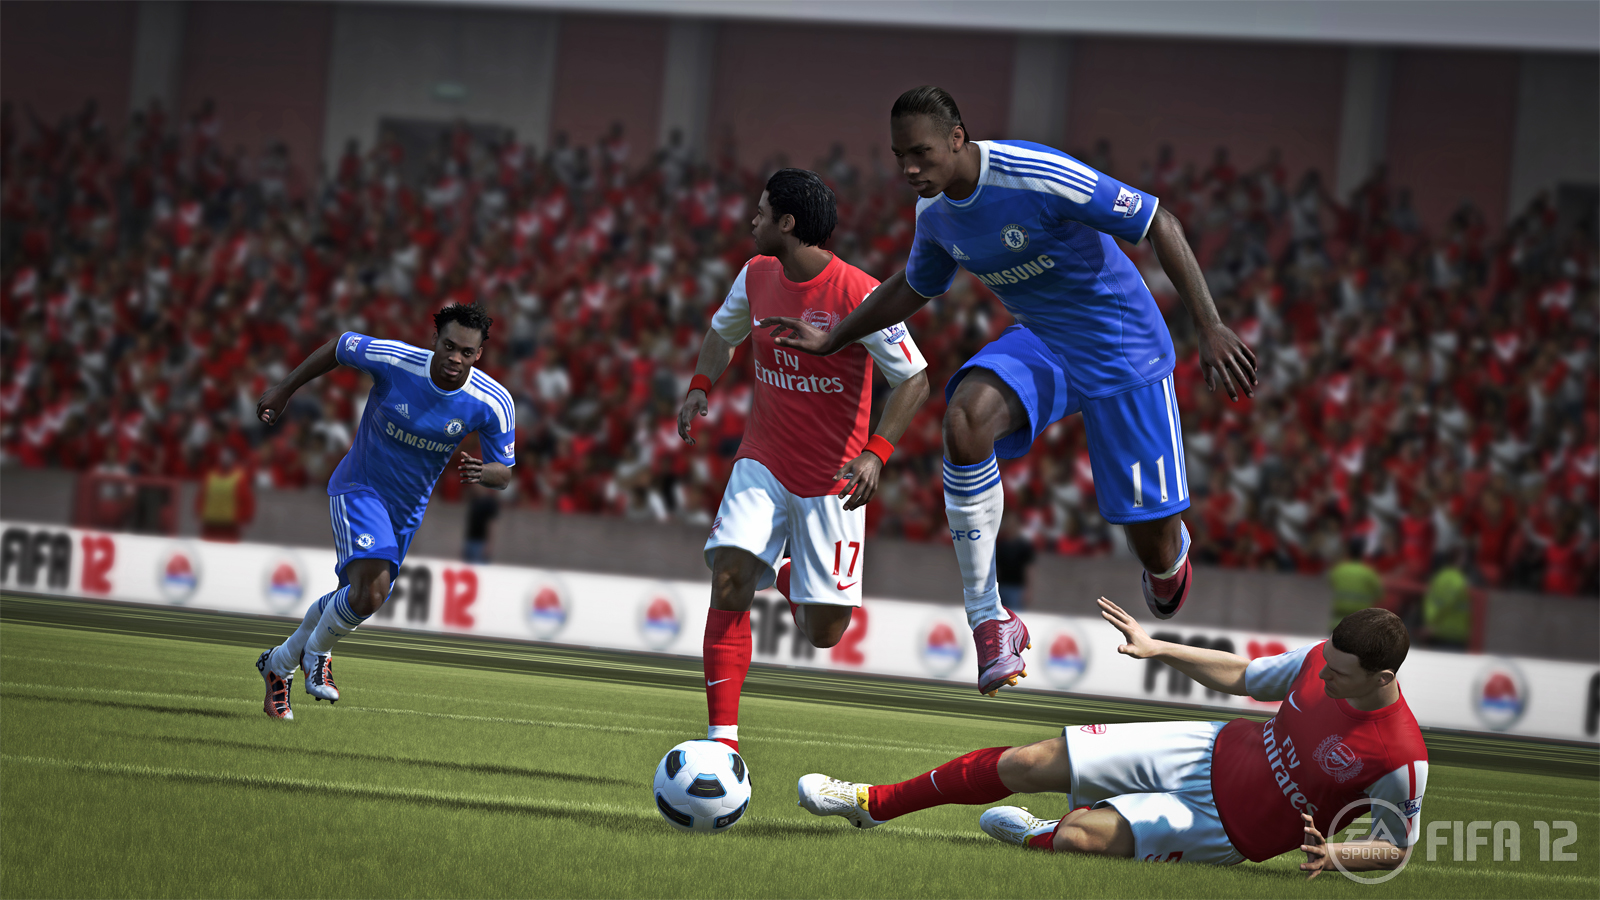 FIFA12_X360_Drogba_jump_over_tackle1.jpg